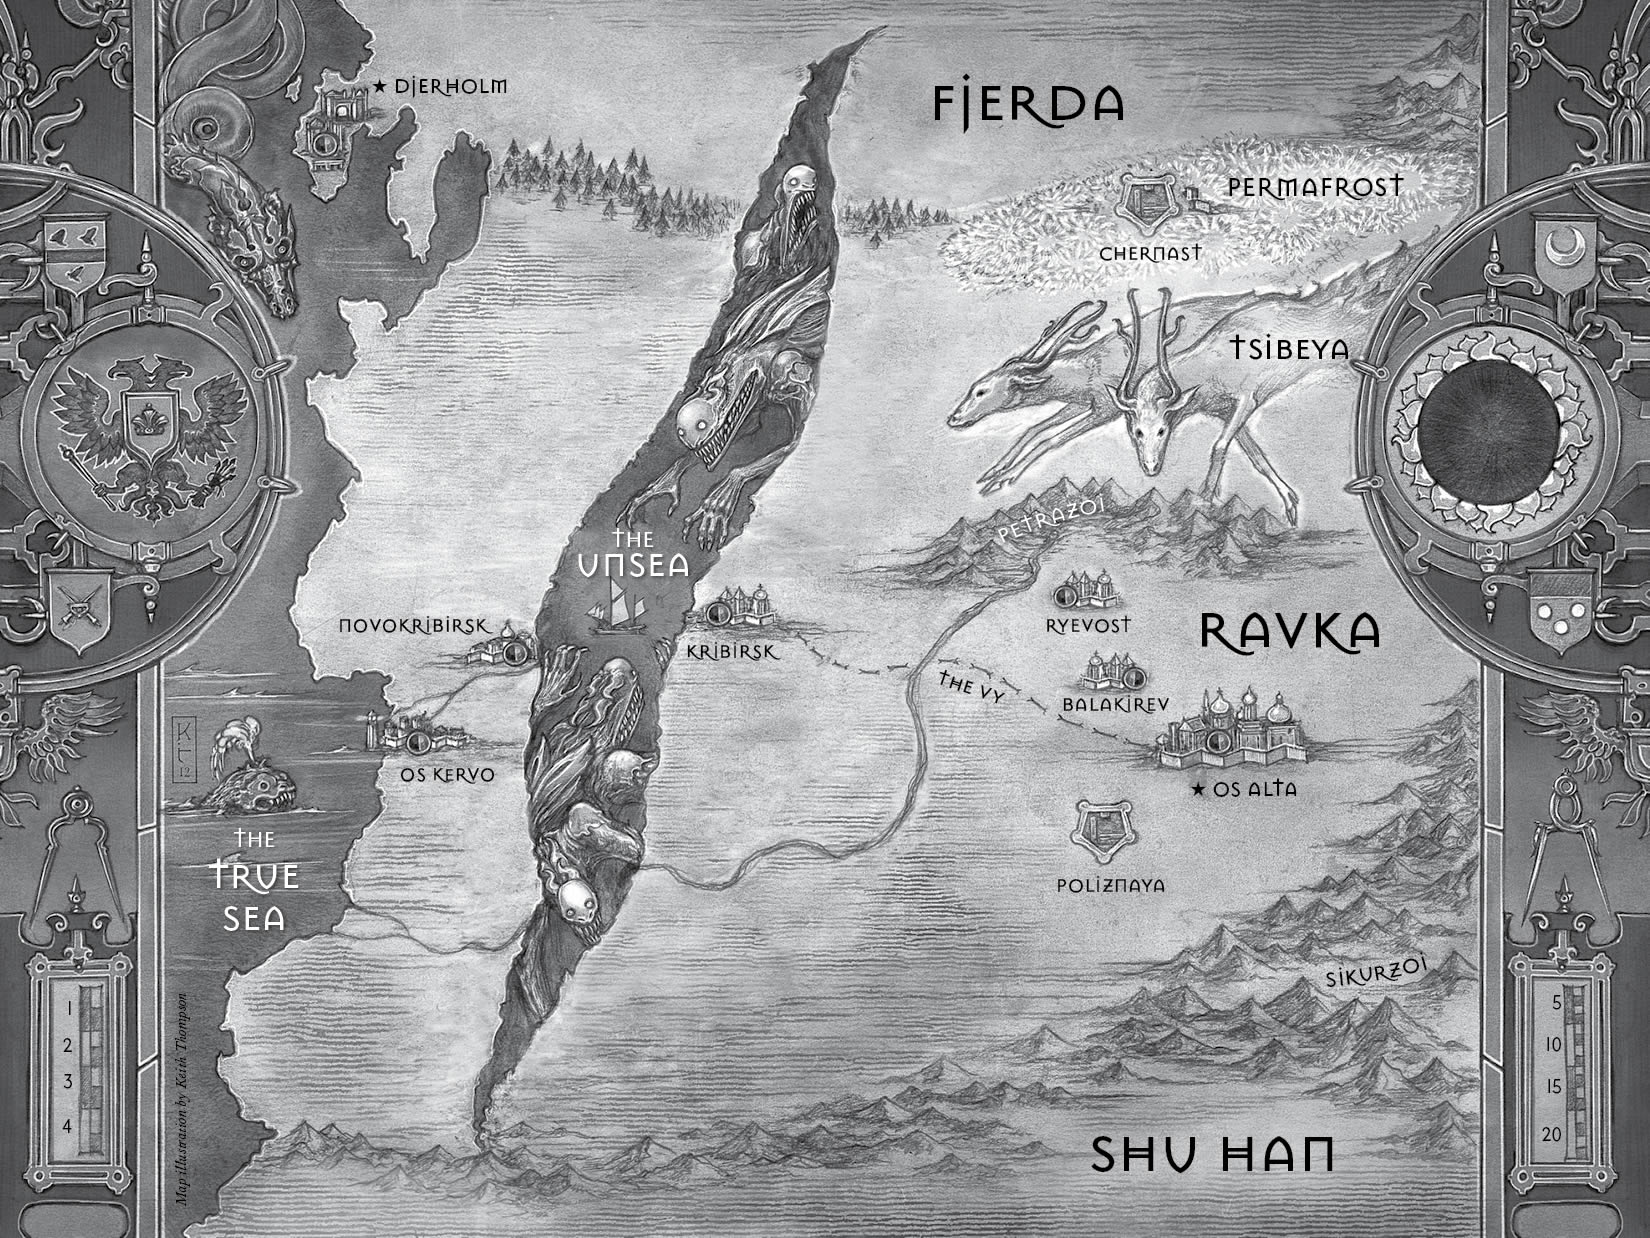 Ravka Map - Leigh Bardugo | Author on king of ford, king of misfit, king william i of germany, king of hunter, king of john, king of strong, king of fire, king of white, king sombra cosplay, king of netherlands, king of troy, king of crown, king of ice, king of hart, king of alba, king of knight, king of superman, king of thomas, king of west, king blood latin kings,